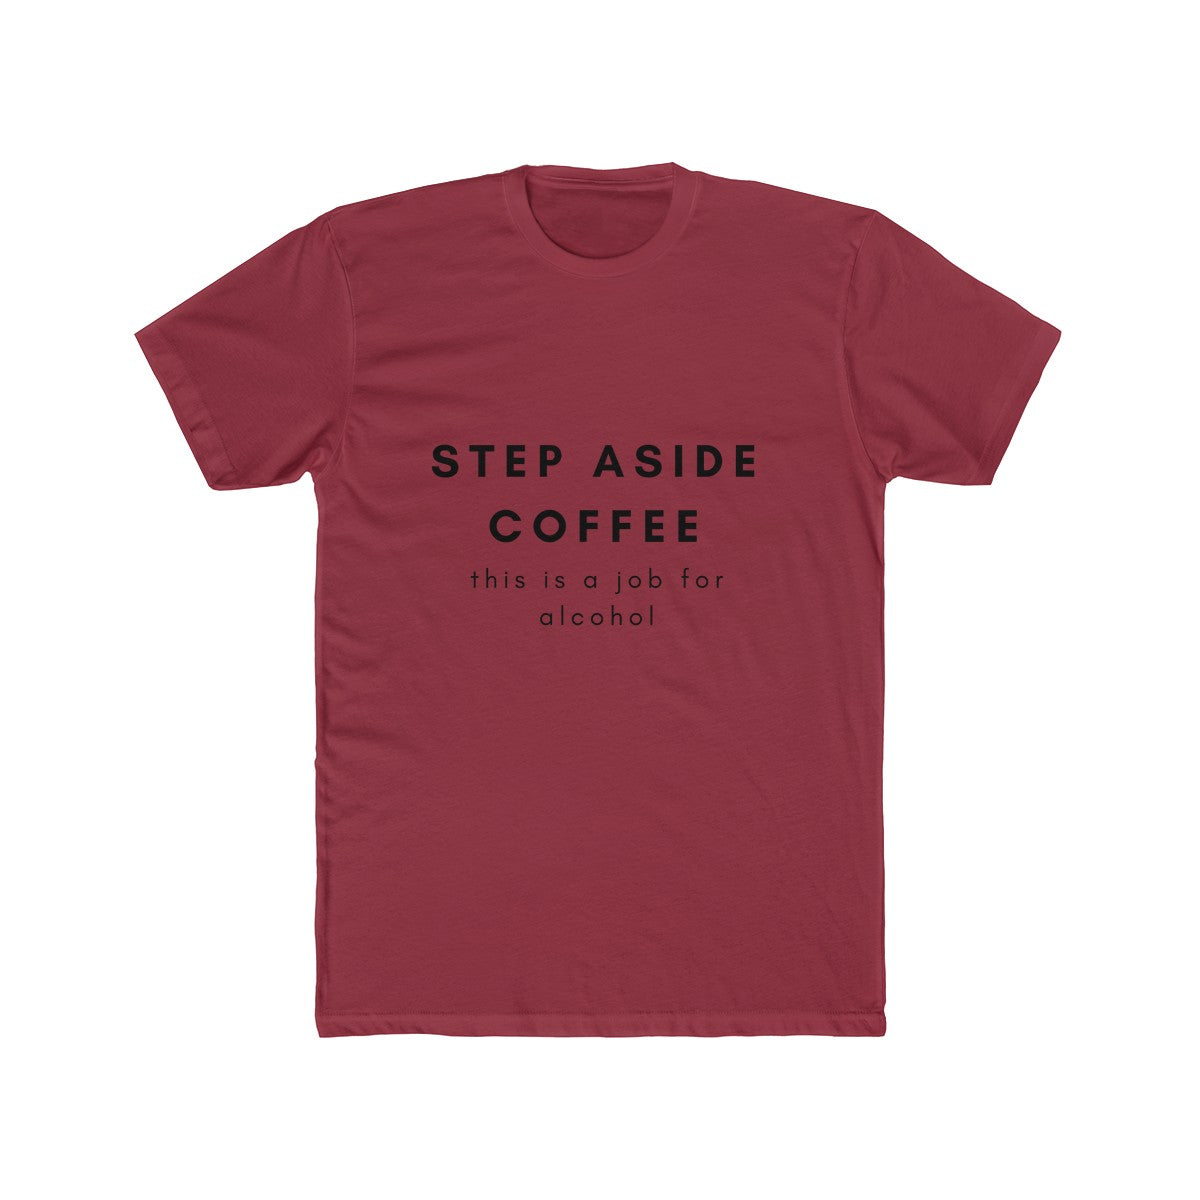 Step Aside Coffee - Men's Cotton Crew Tee